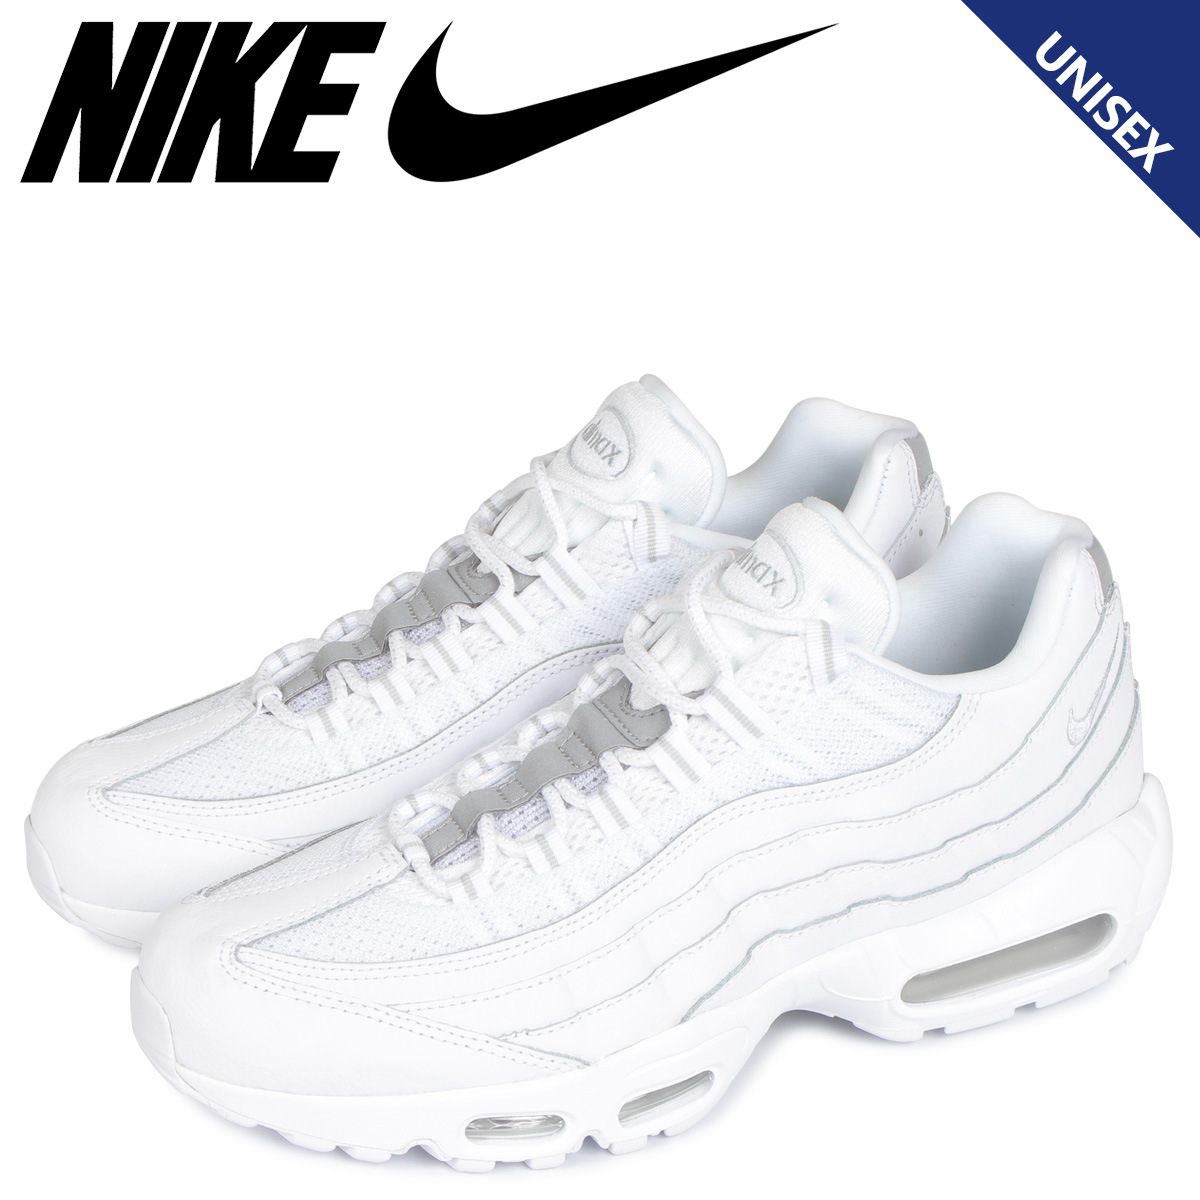 NIKE Kie Ney AMAX 95 essential sneakers men gap Dis AIR MAX 95 ESSENTIAL white white AT9865 100